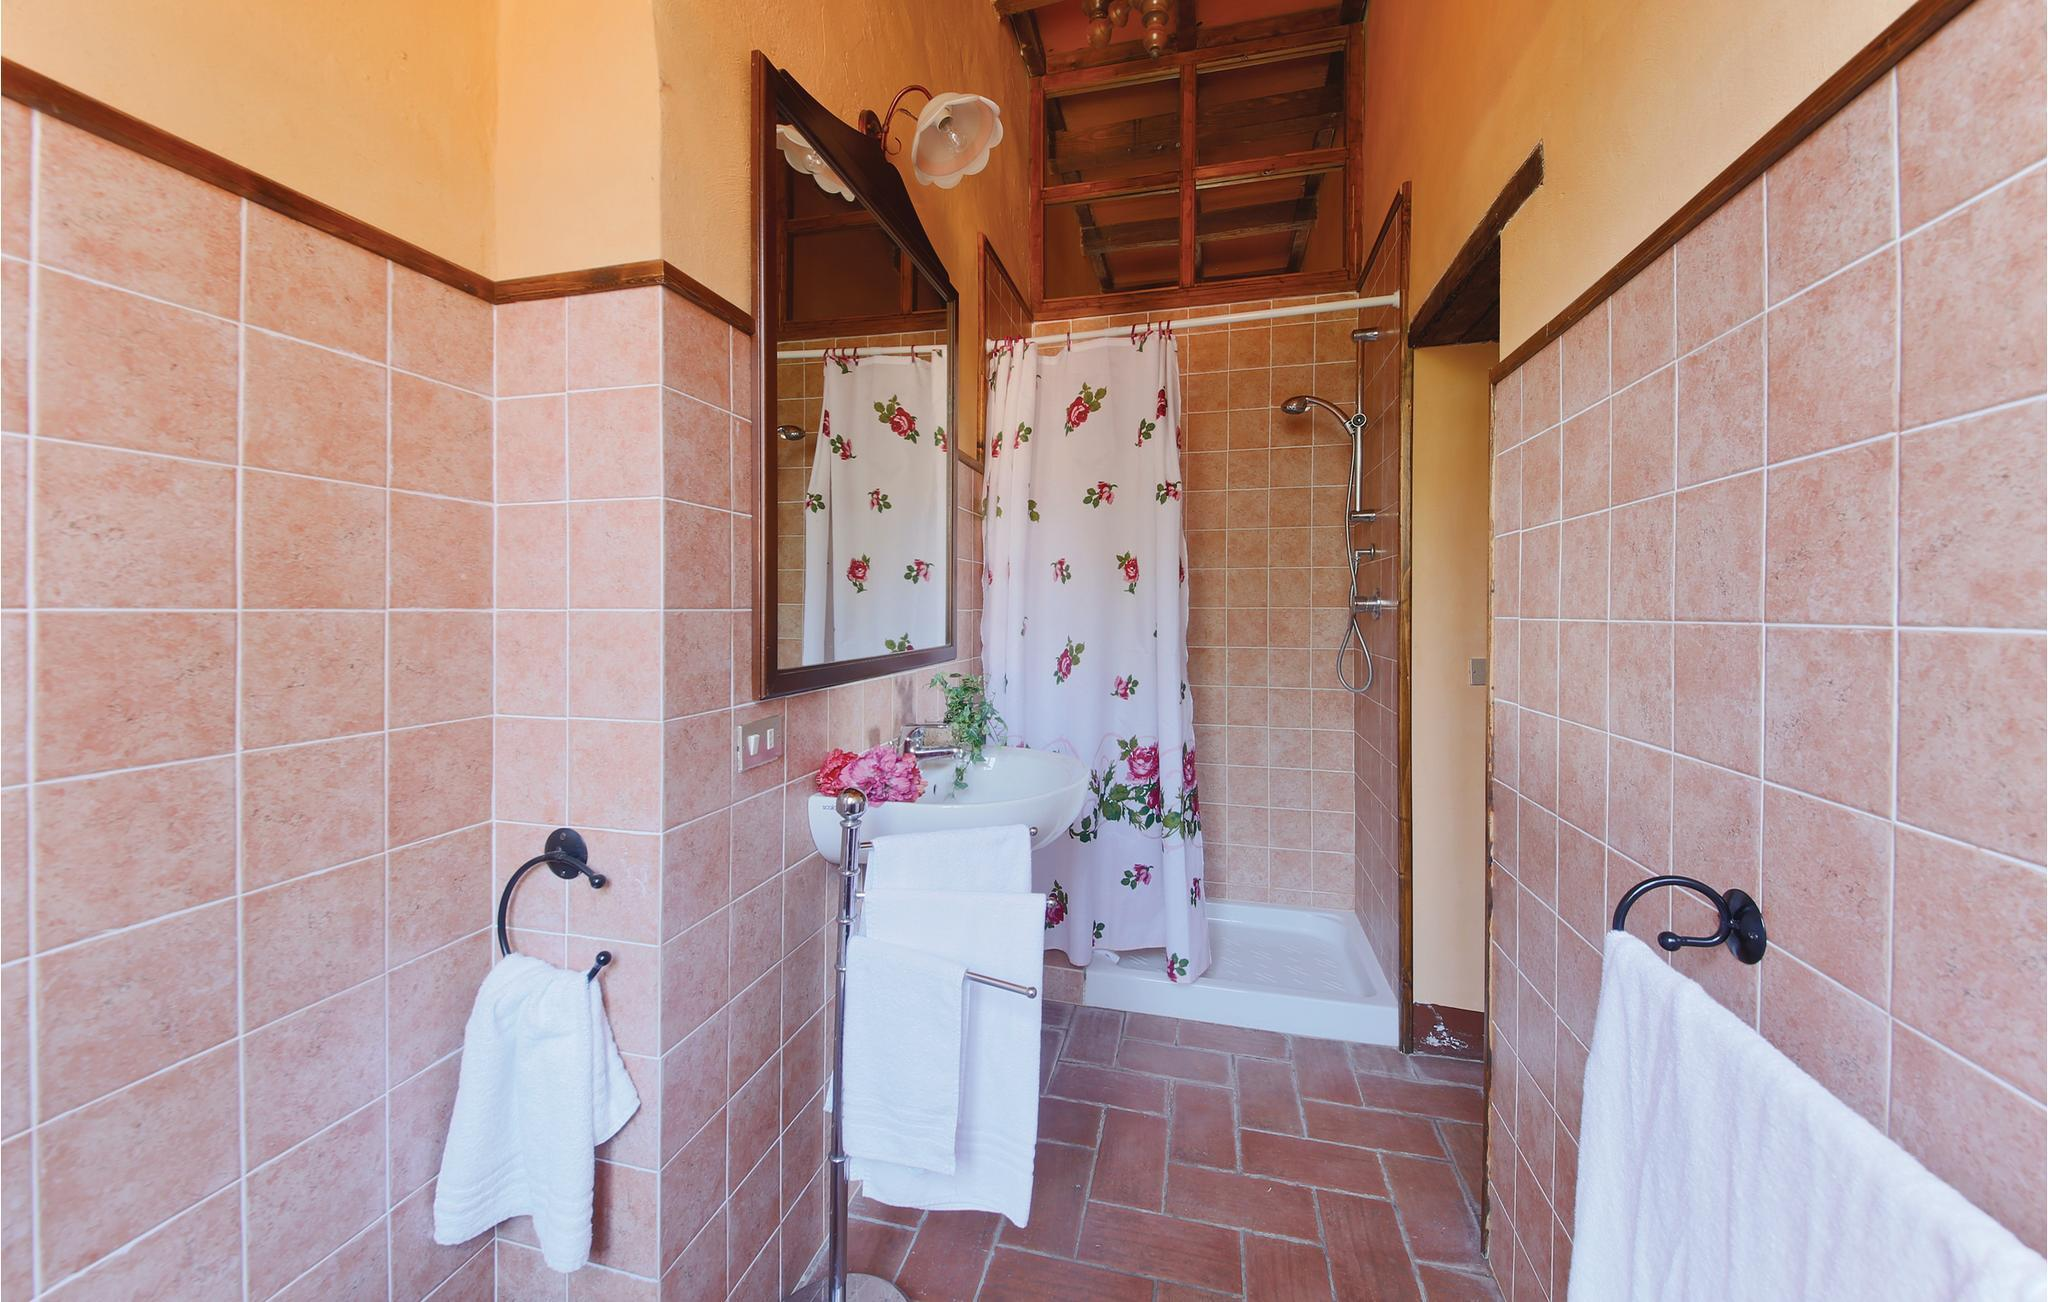 Holiday Home Apartment 18 Persons Loc Falceto Ambra 52020 Ambra Ar 140 Ita620 Feline Holidays